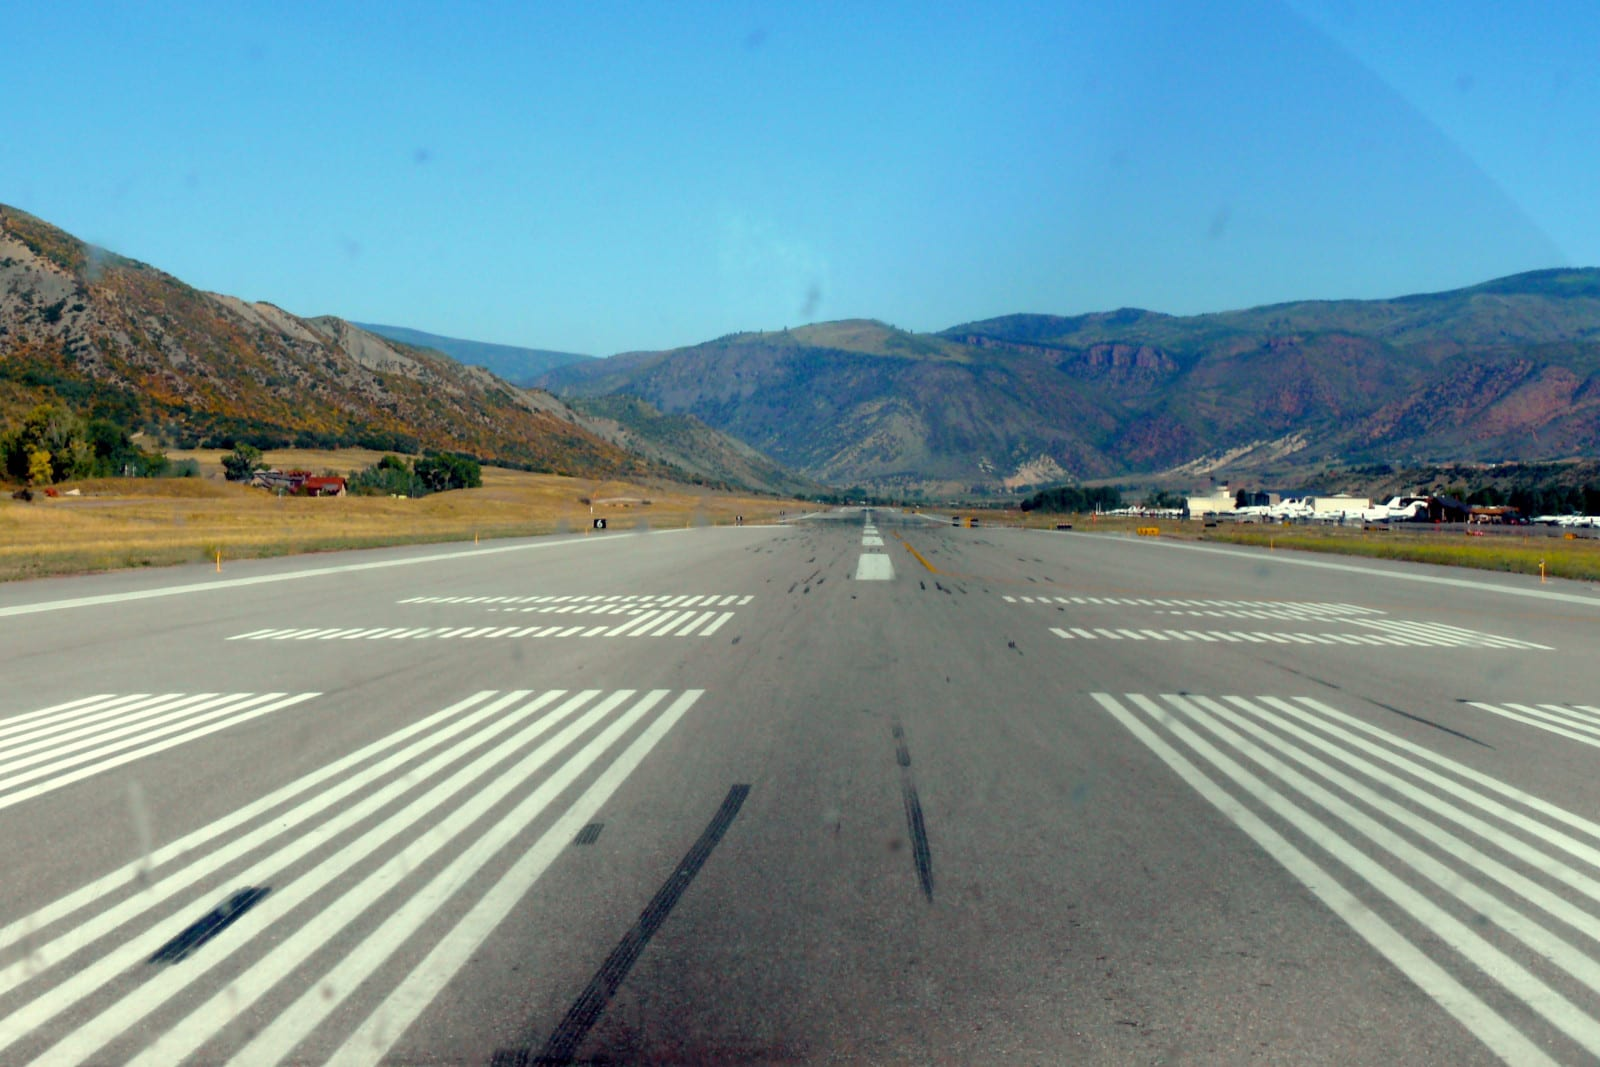 Aspen-Pitkin County Airport Runway 33